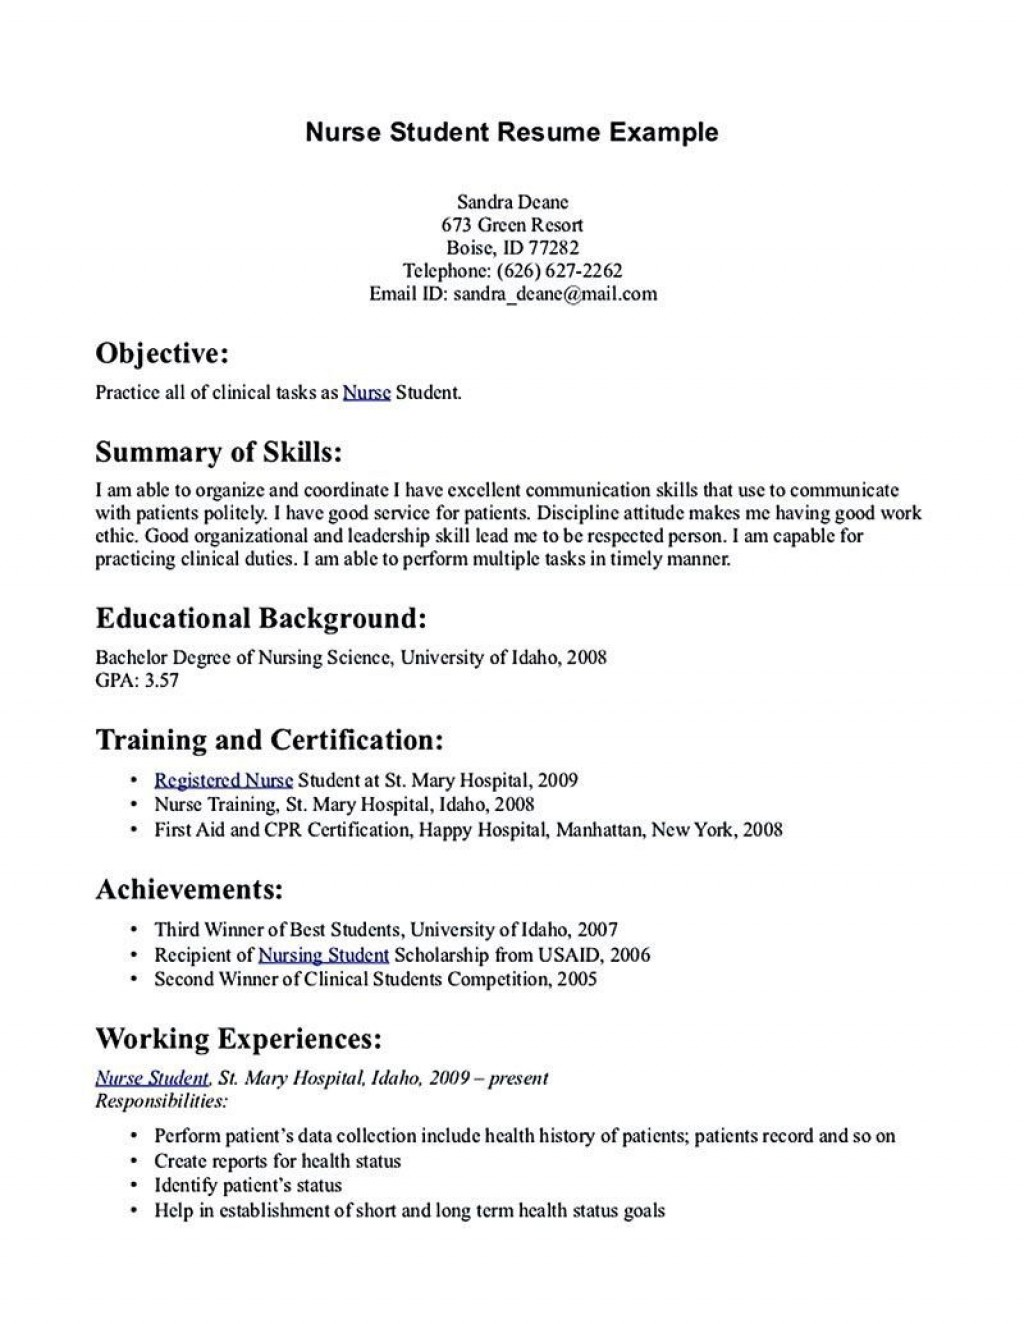 002 Excellent Nursing Student Resume Template Inspiration  Templates Free WordLarge